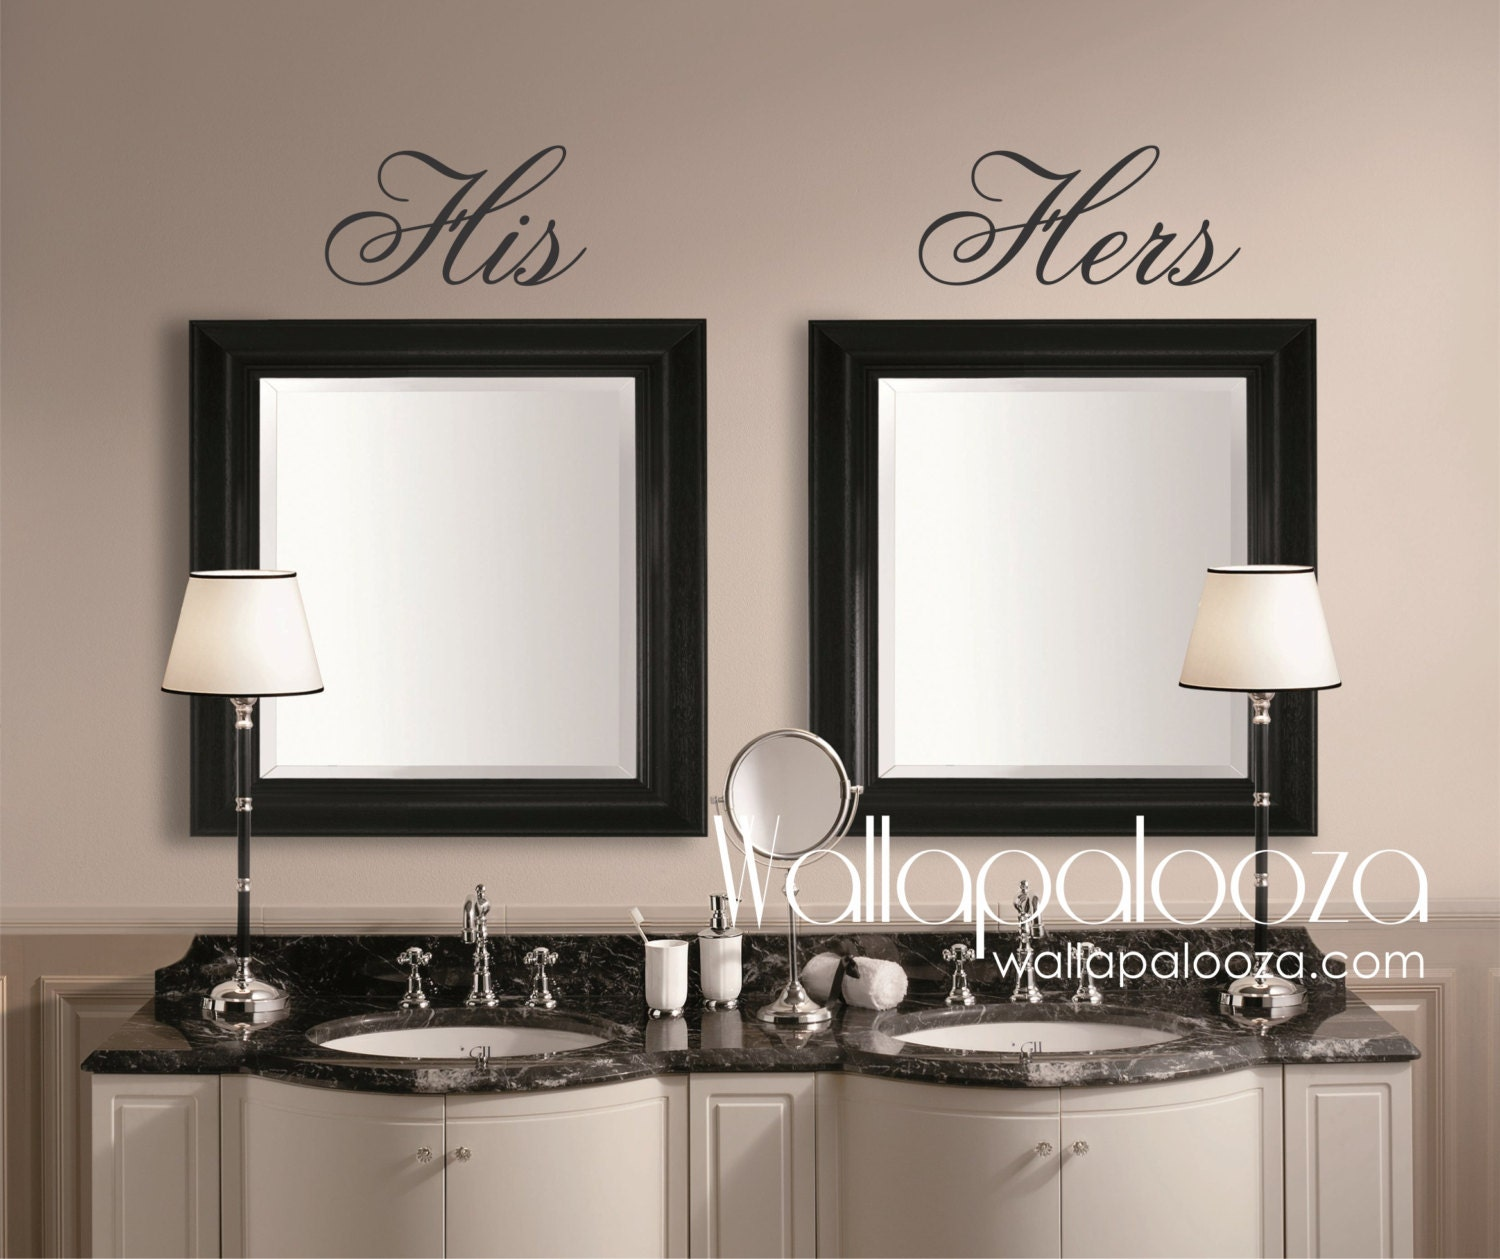 Bathroom wall decor his and hers wall decal mirror decal for Bathroom decor uk